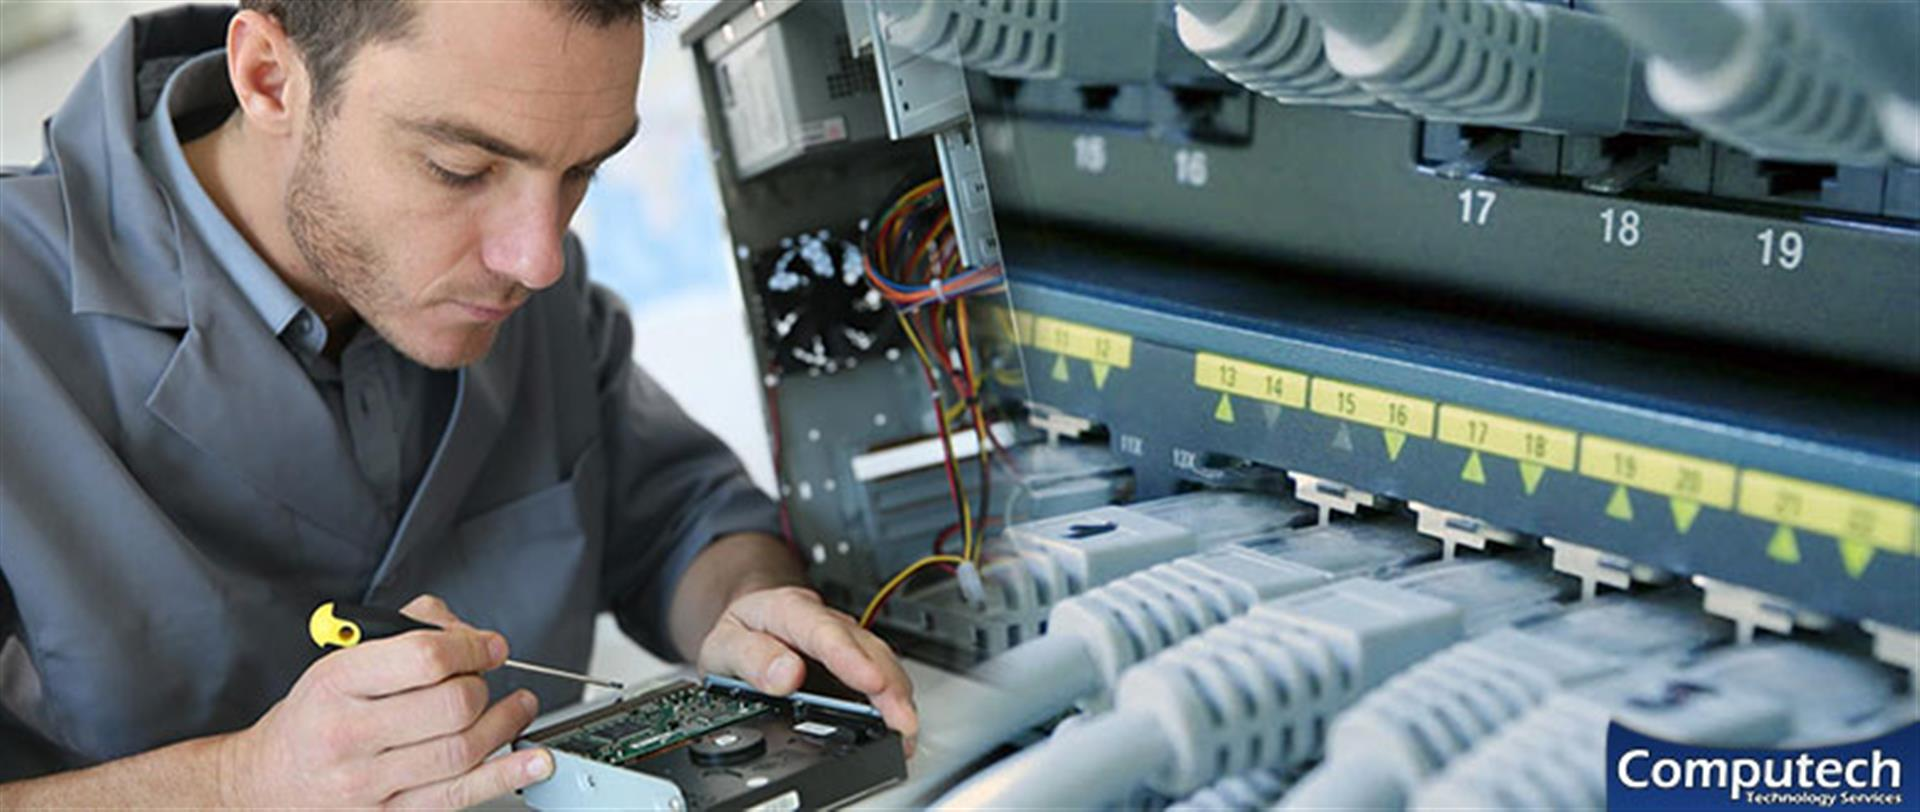 Union Springs Alabama On Site Computer PC & Printer Repairs, Networks, Voice & Data Low Voltage Cabling Services